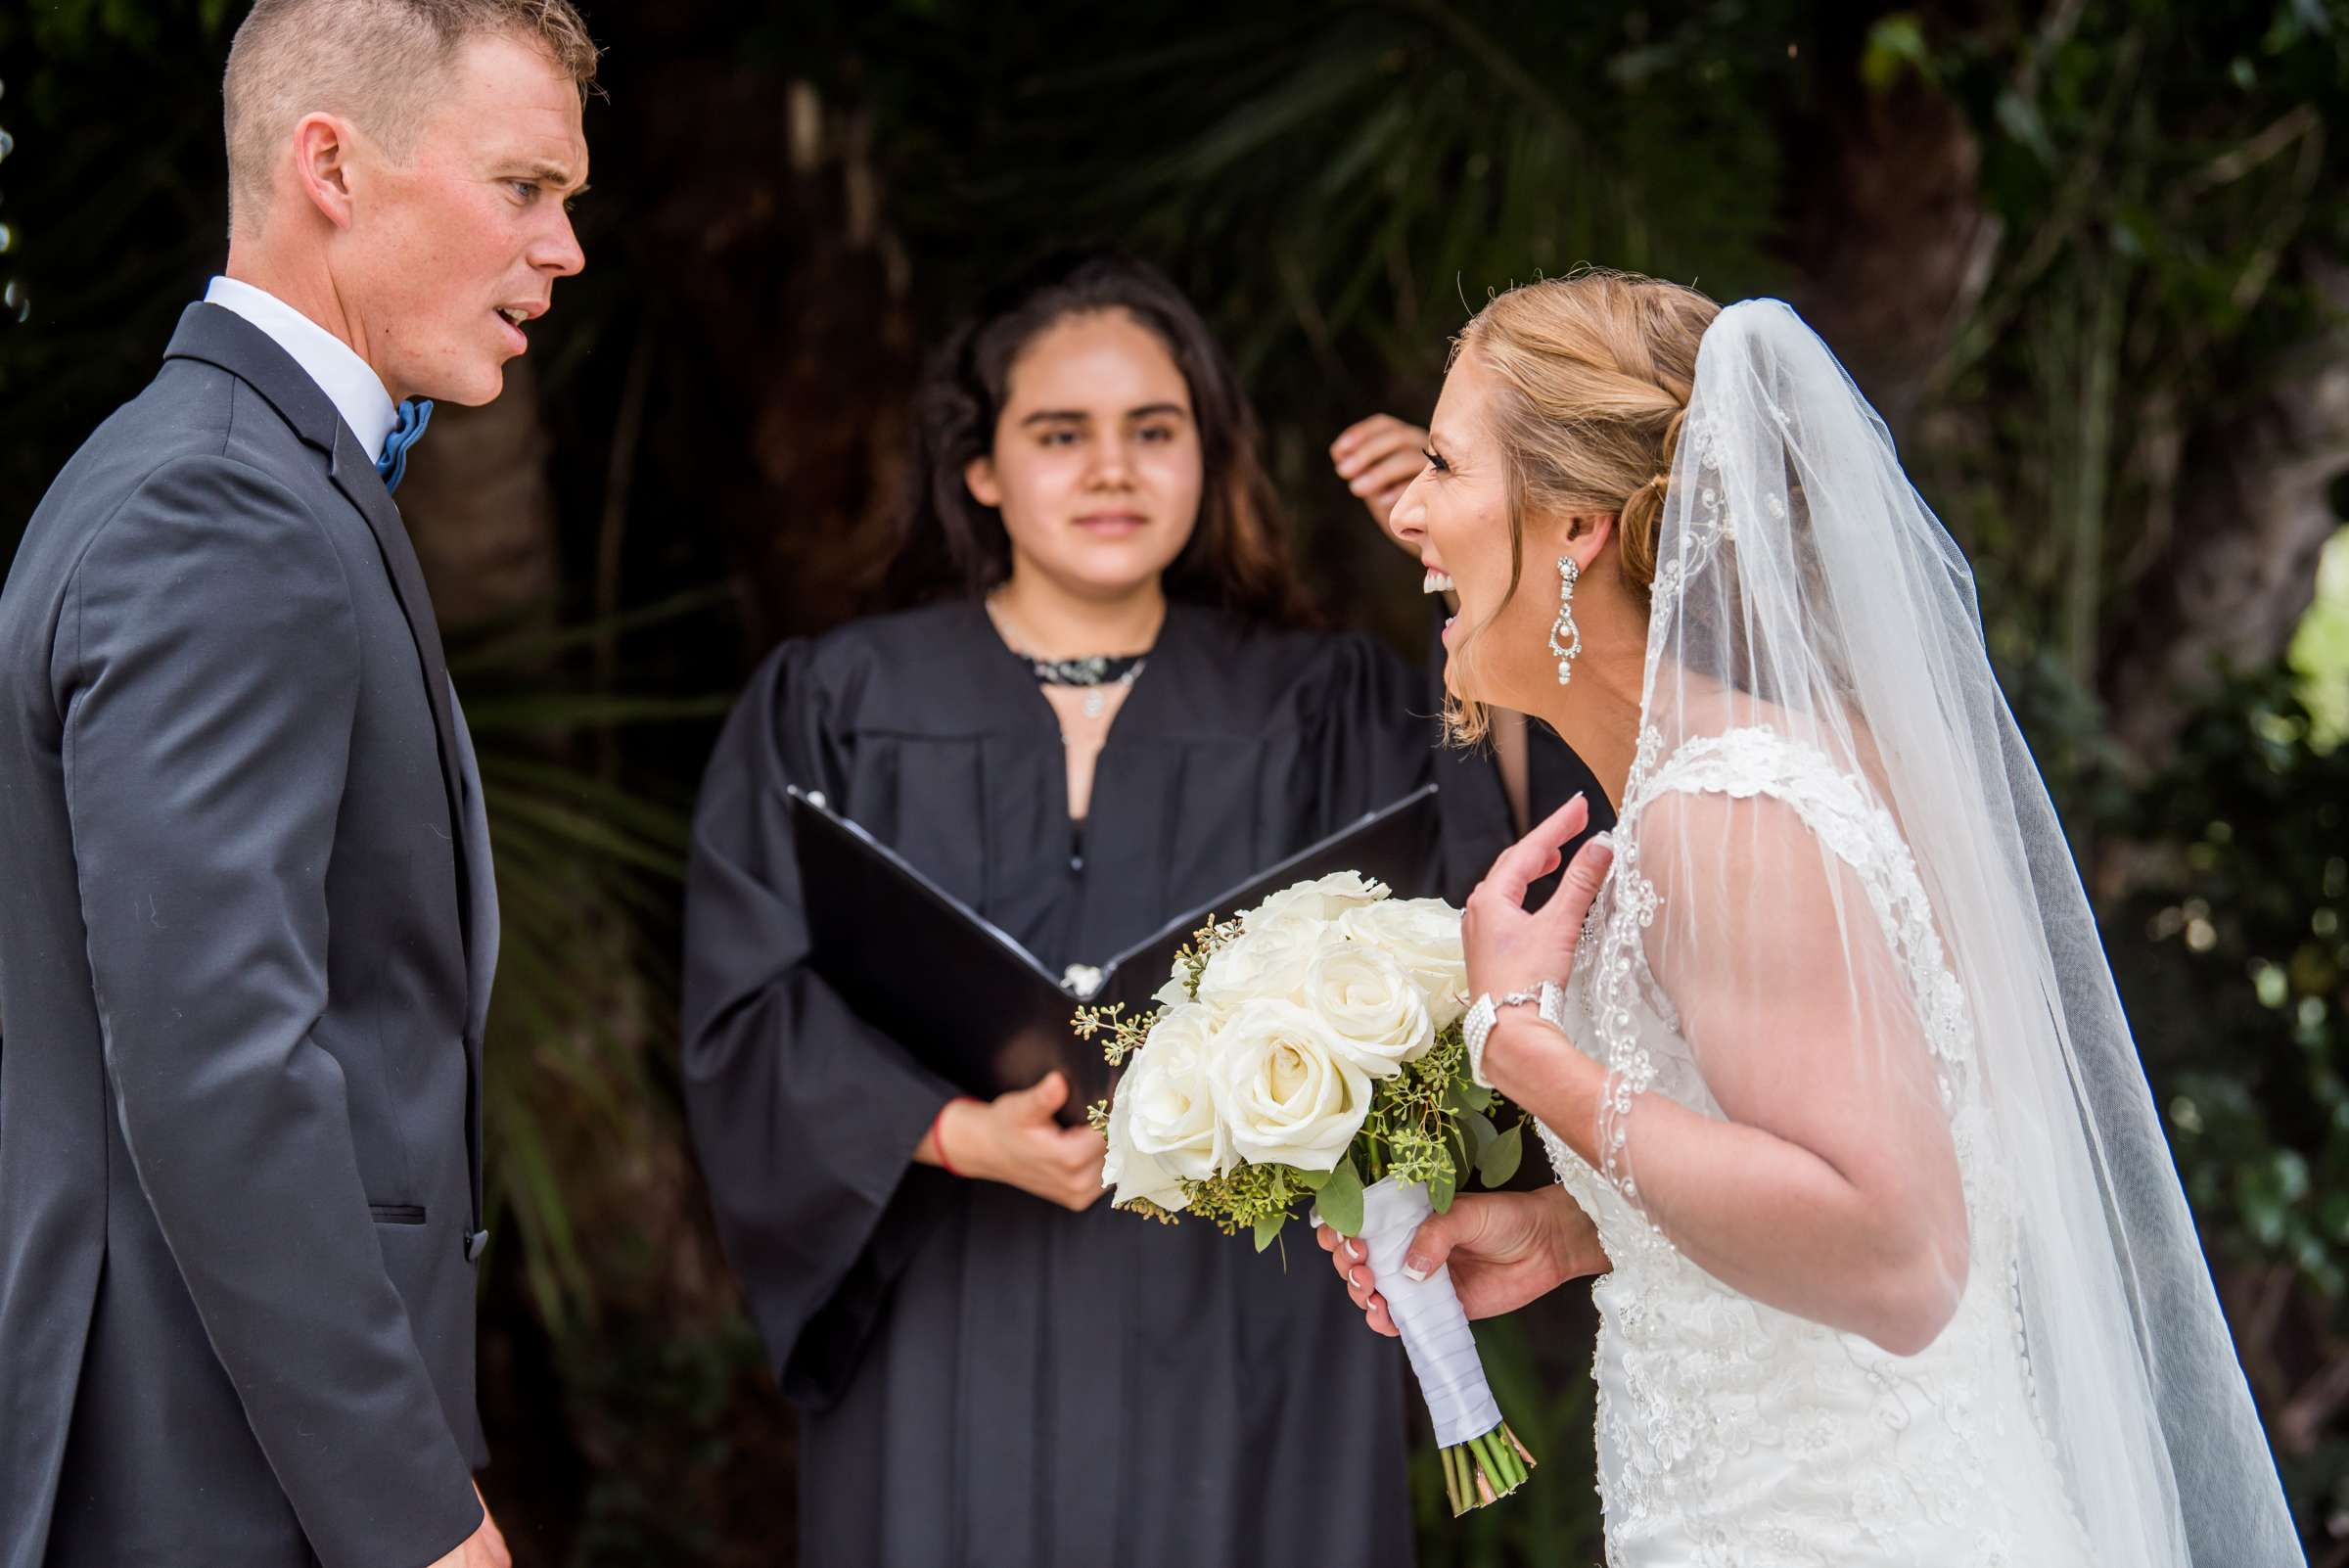 San Diego Courthouse Wedding, Stephanie and Tyler Wedding Photo #16 by True Photography